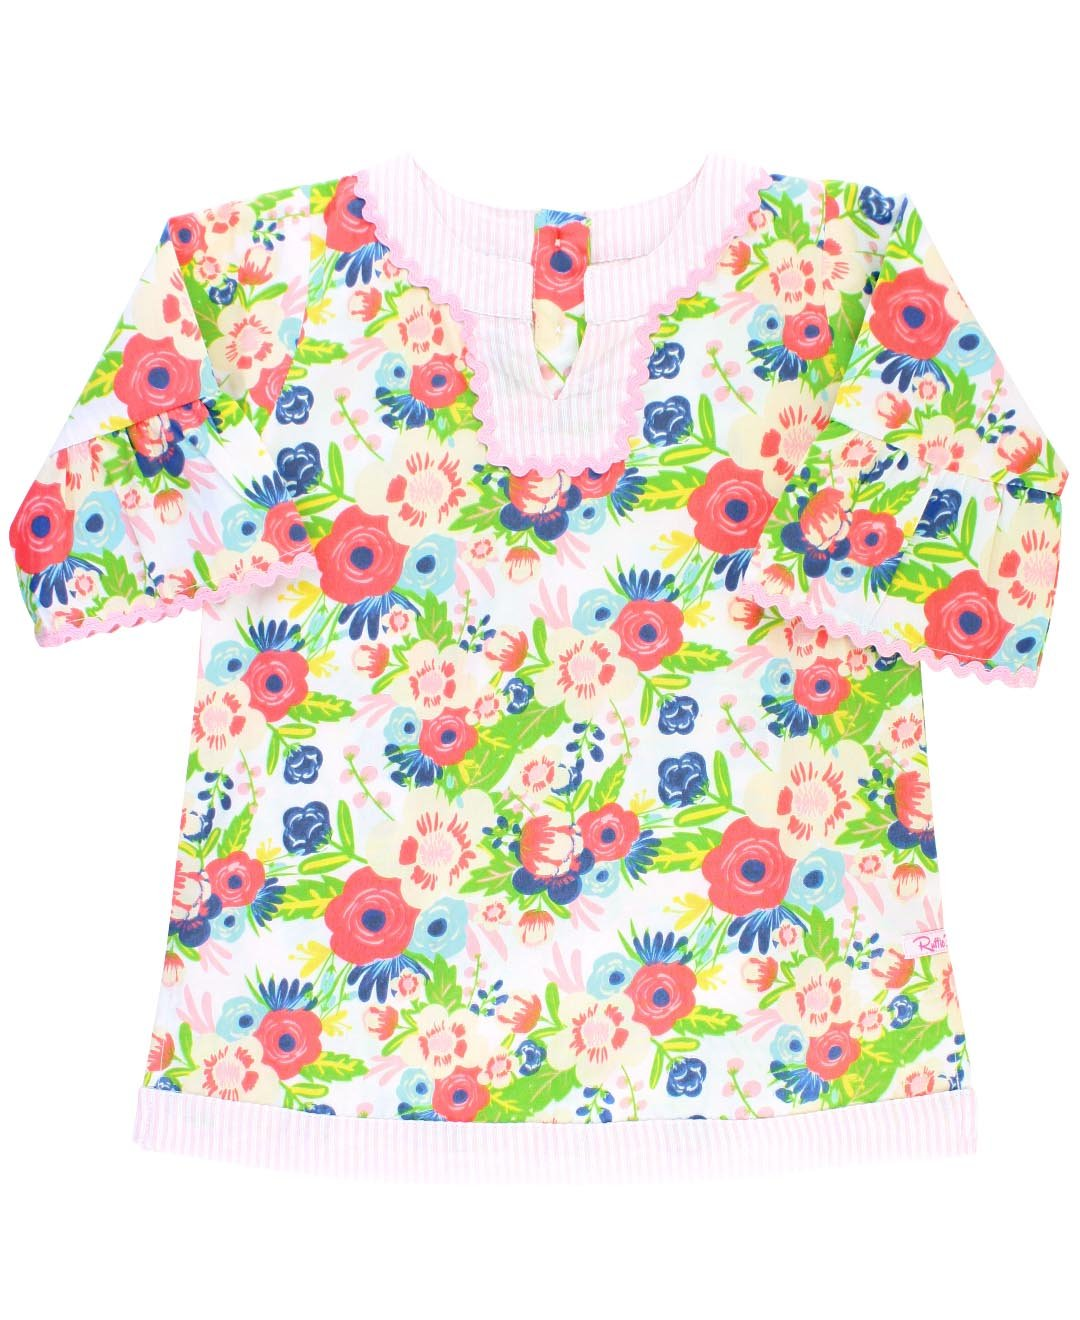 RuffleButts Little Girls Vintage Floral w/Seersucker Tunic Swimsuit Cover-Up - 3T